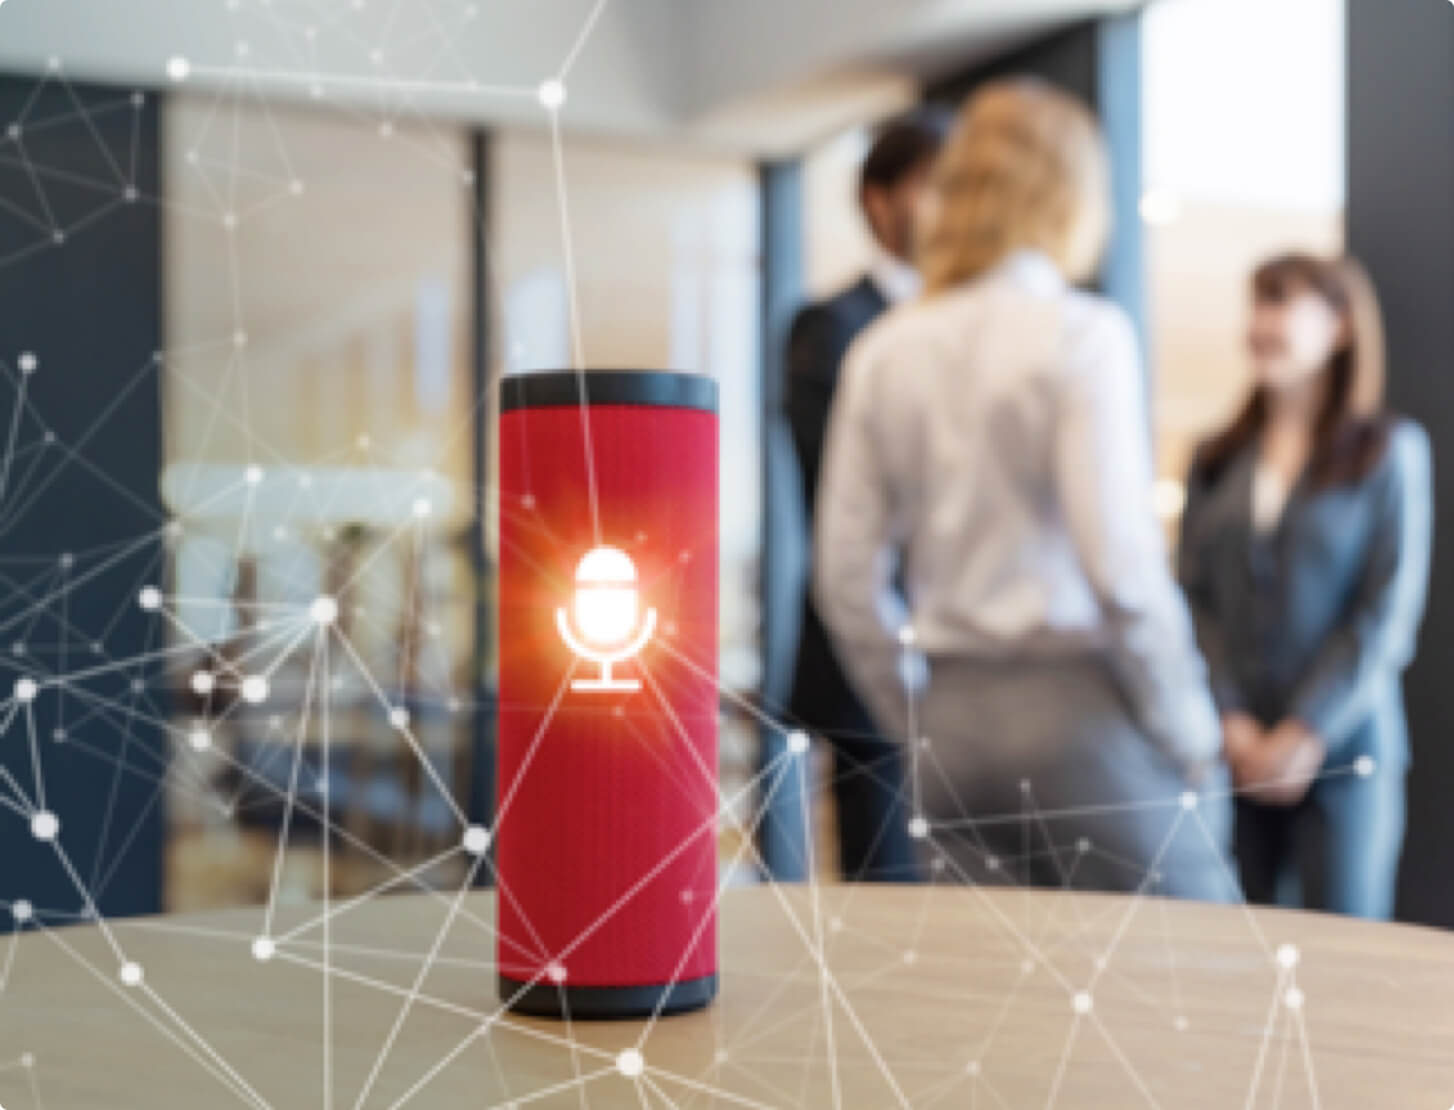 A red smart speaker on a table at work.